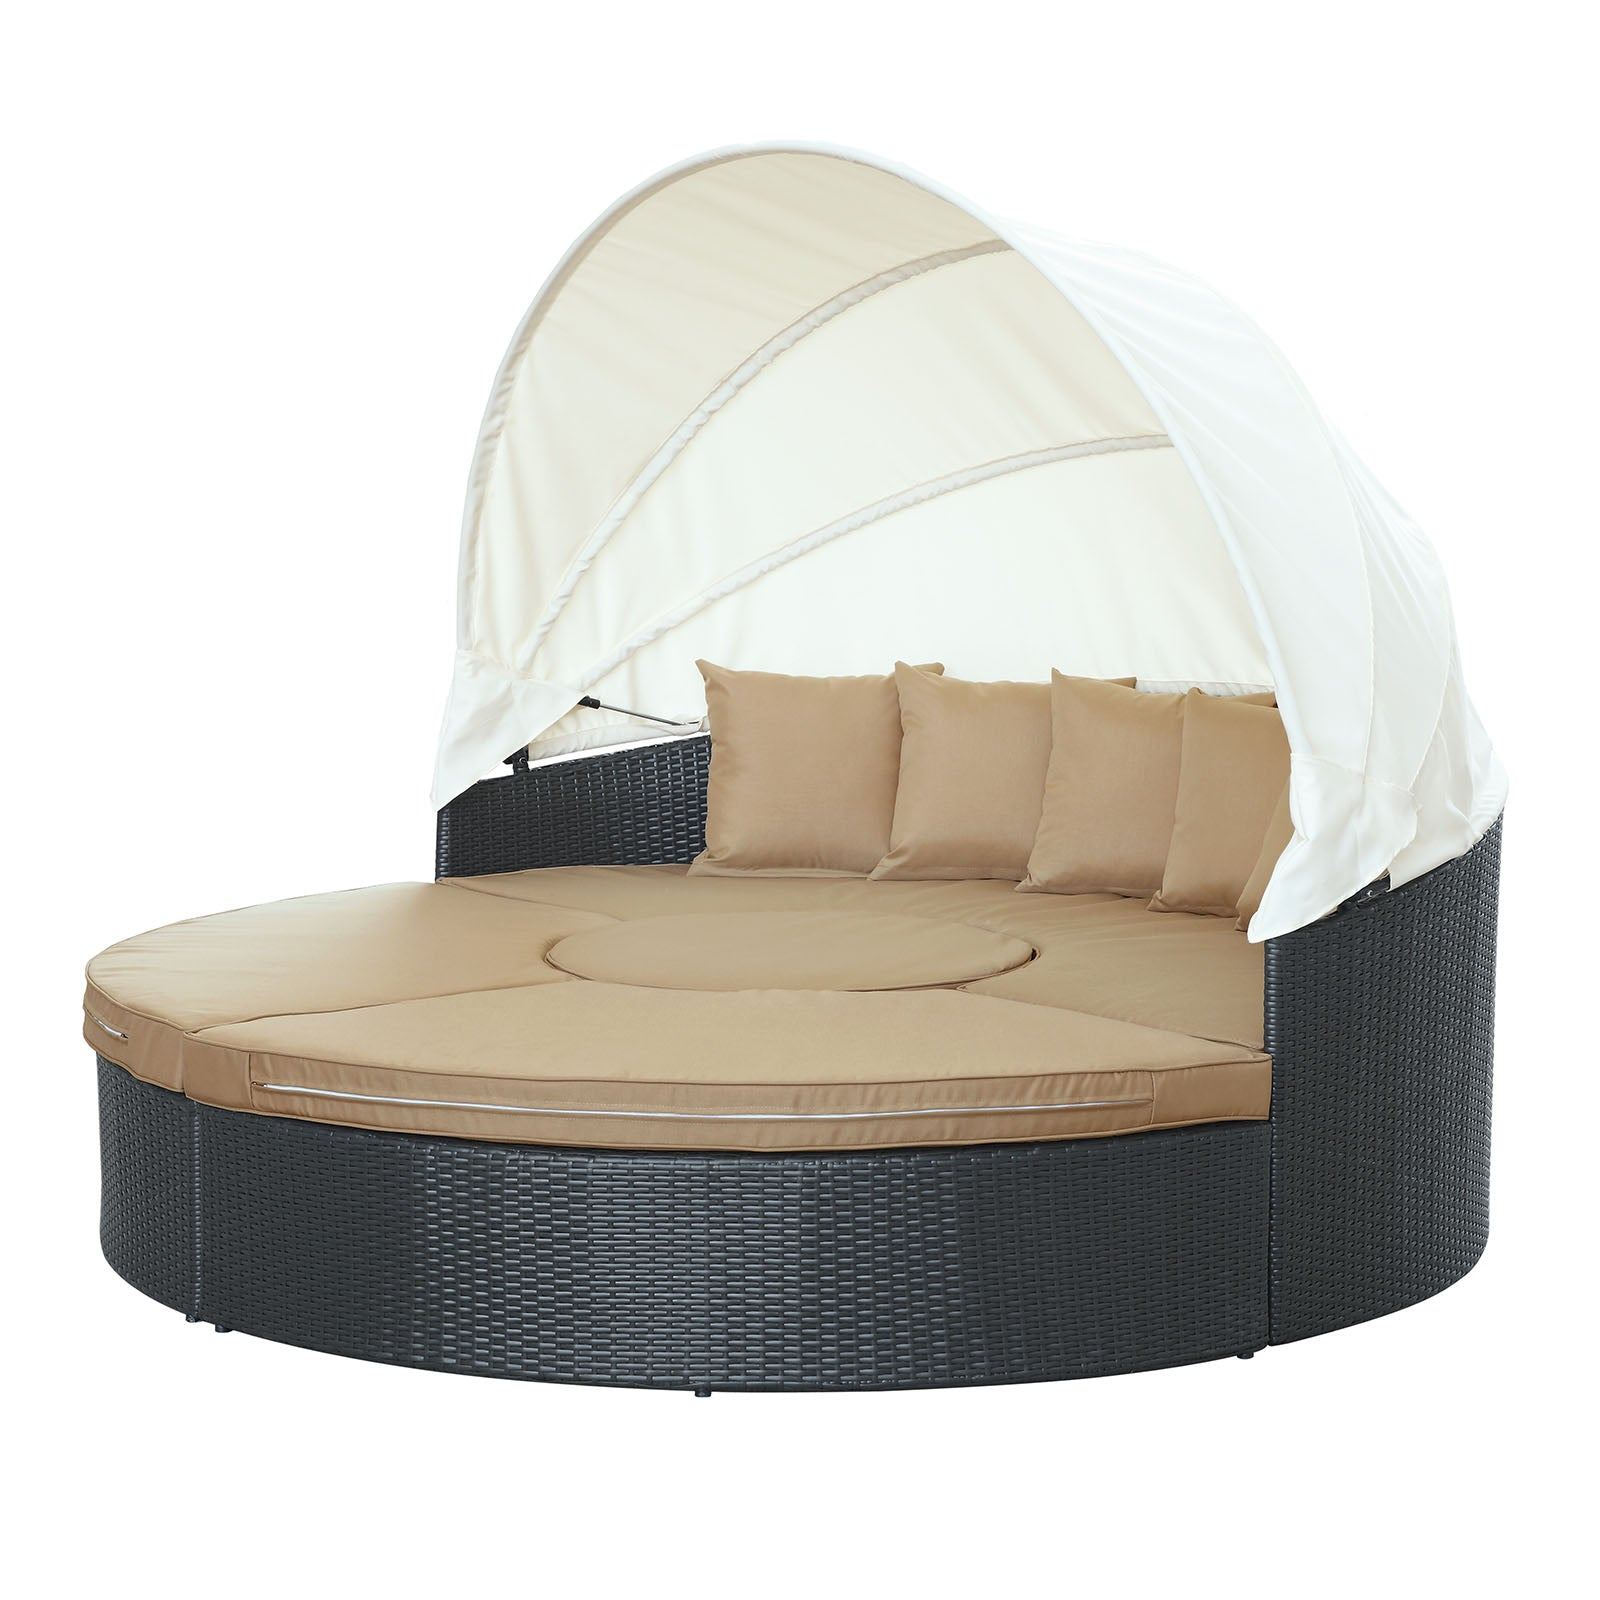 Modway furniture modern quest canopy outdoor patio daybed eei 983